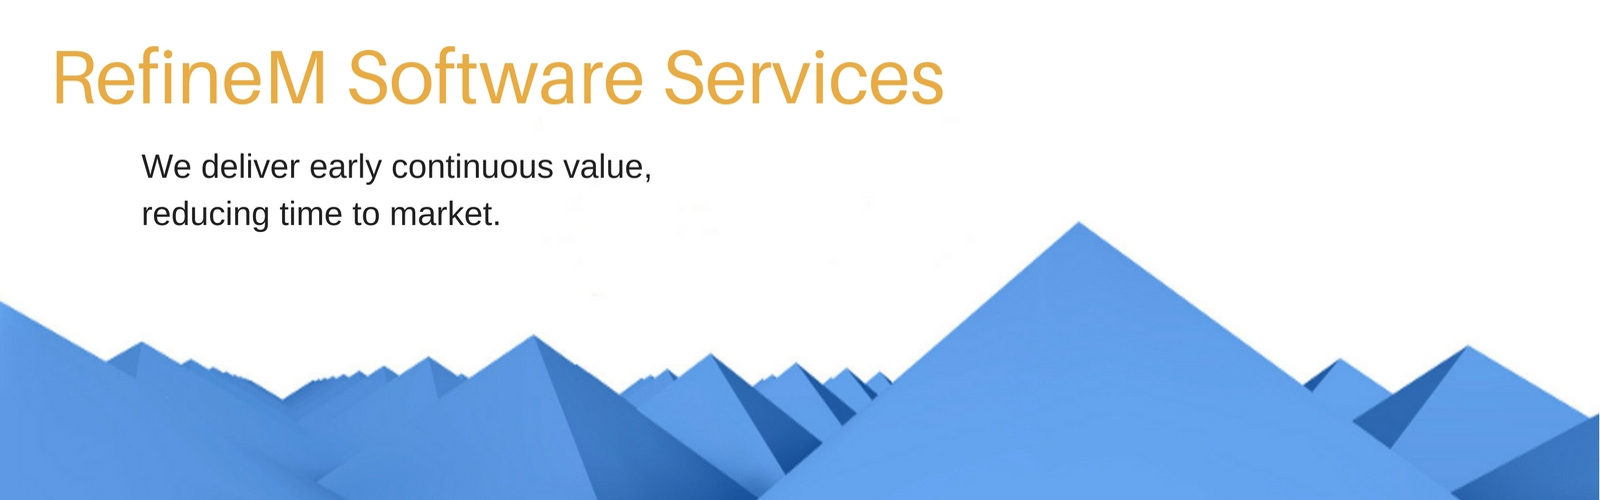 RefineM Software Services